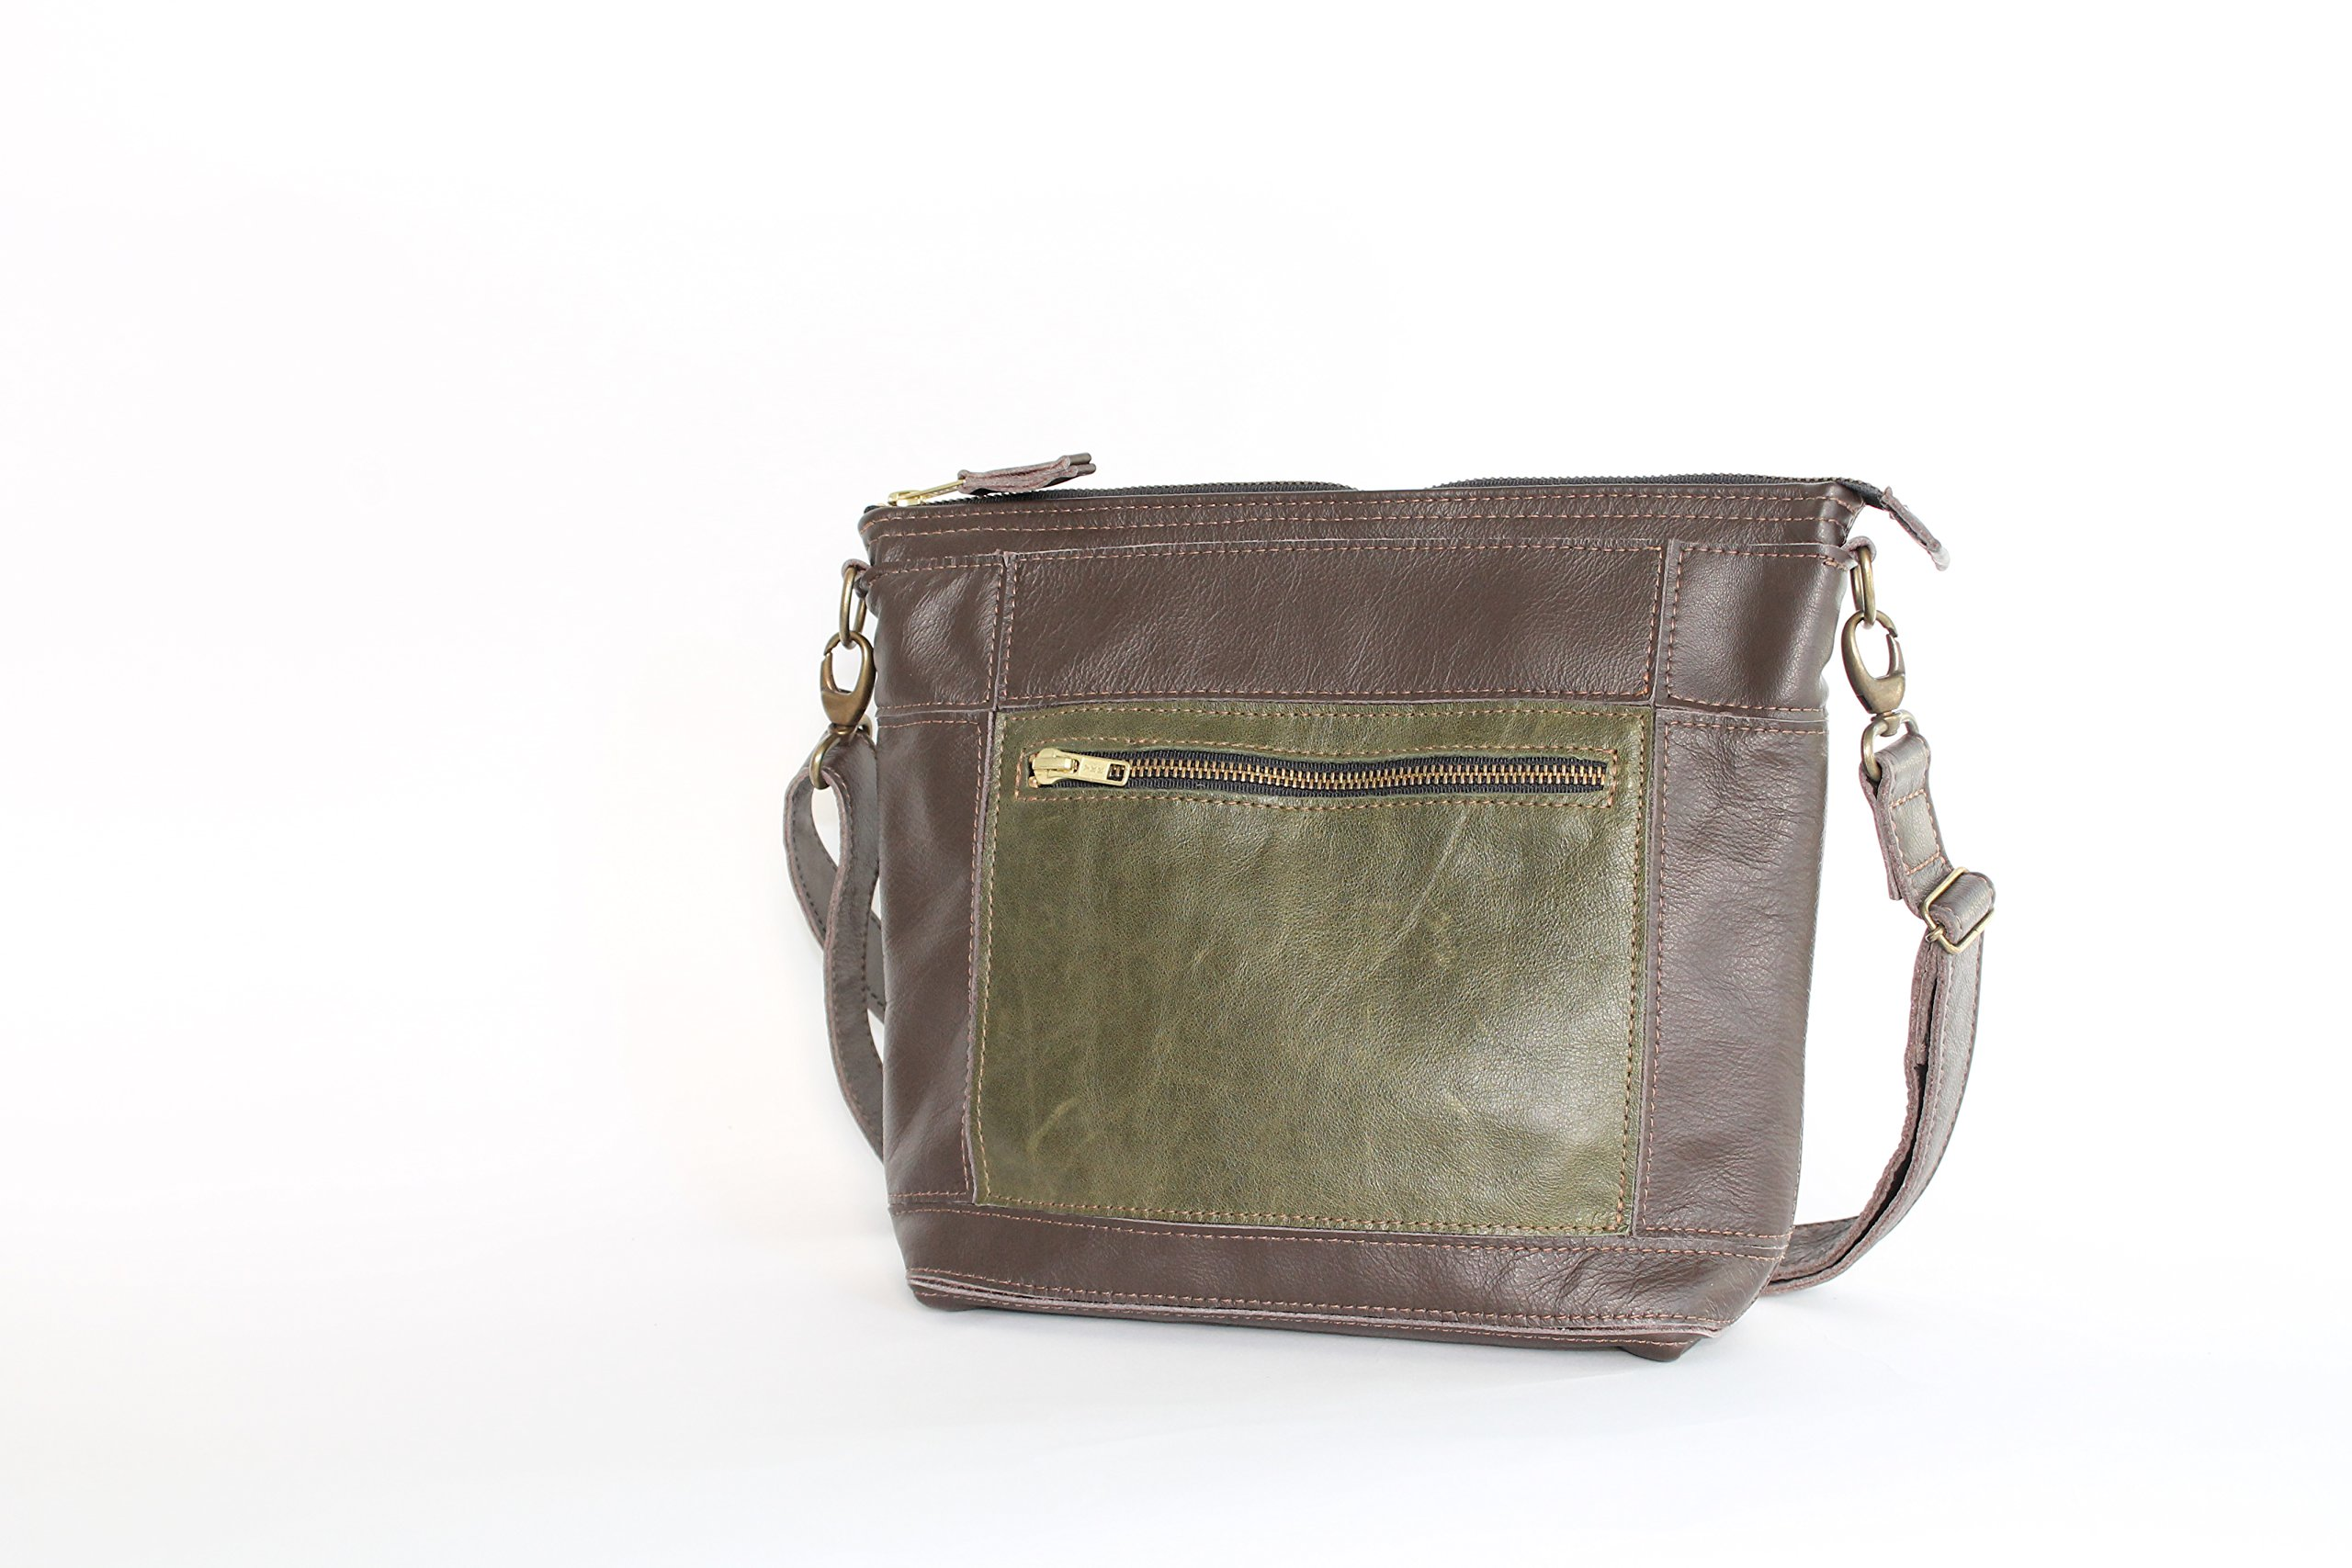 handcrafted leather cross-body bag